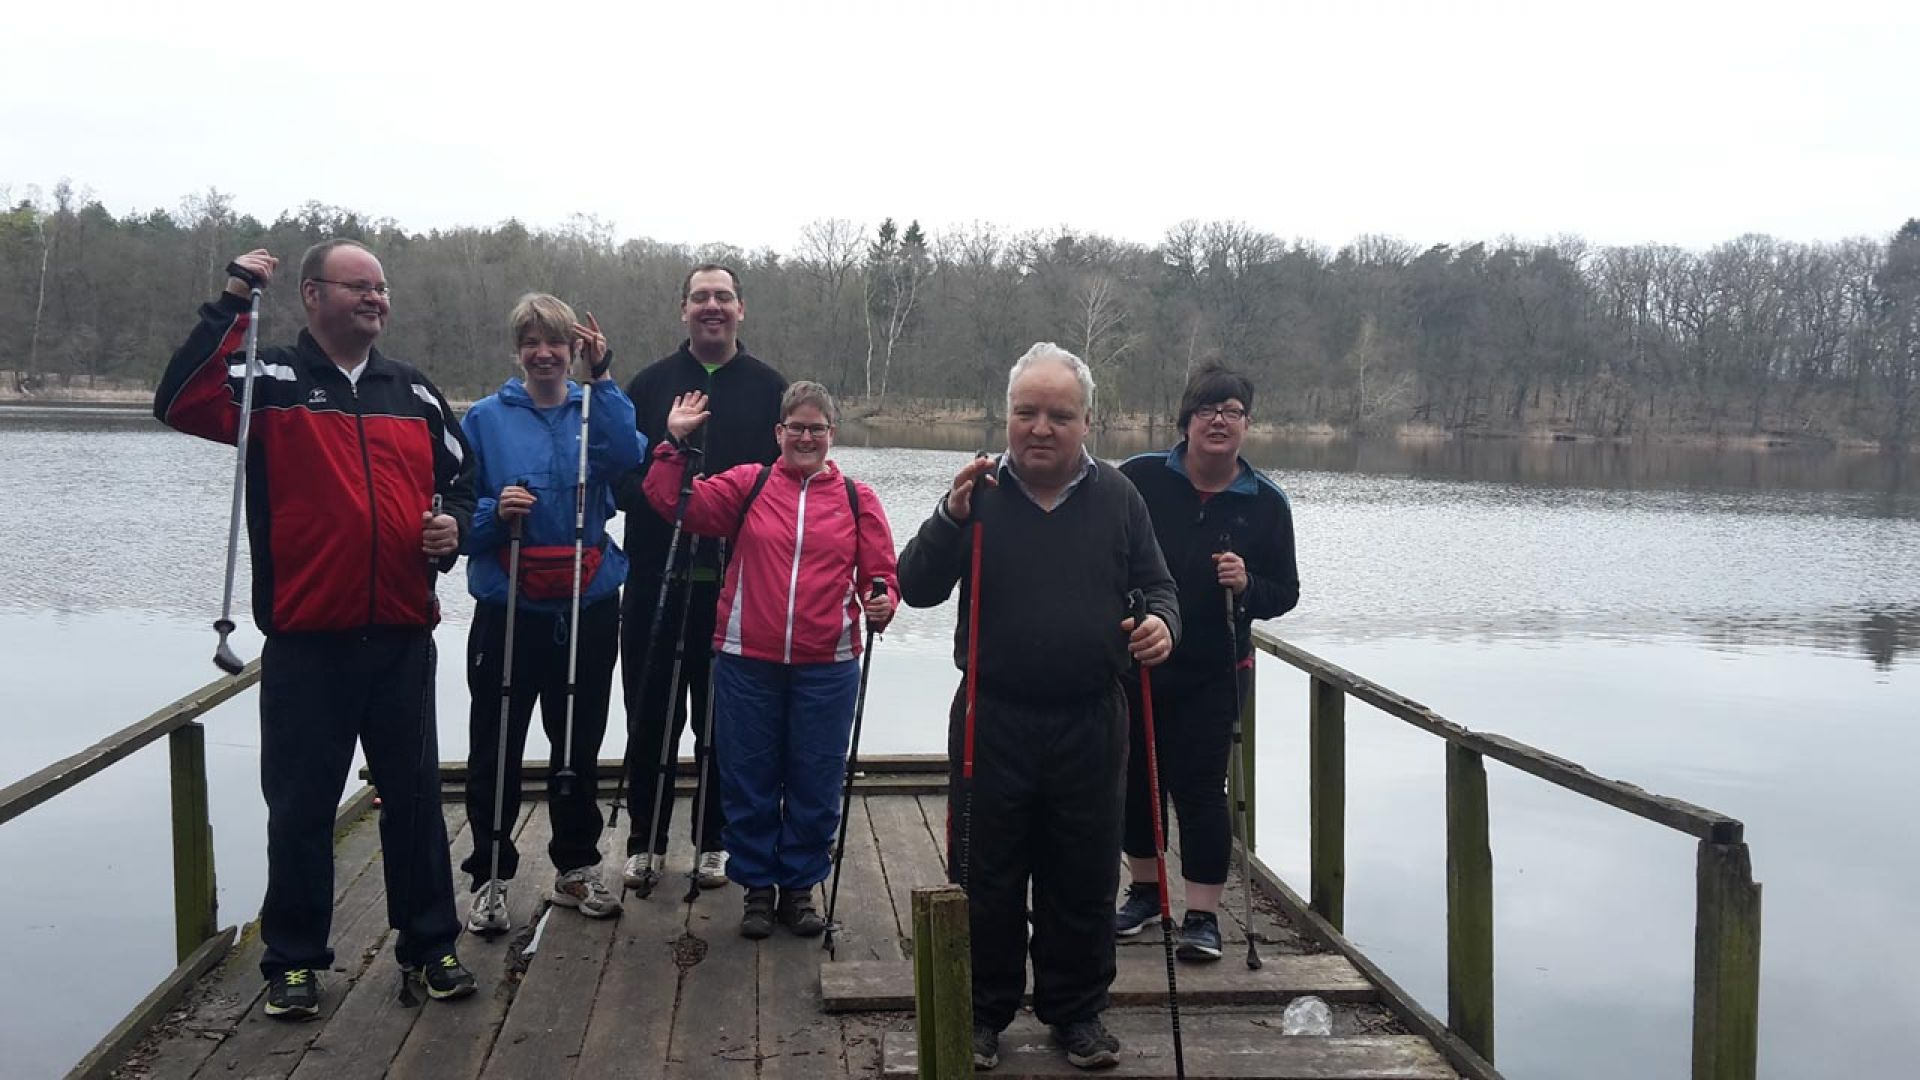 nordic-walking-workout-gruppe